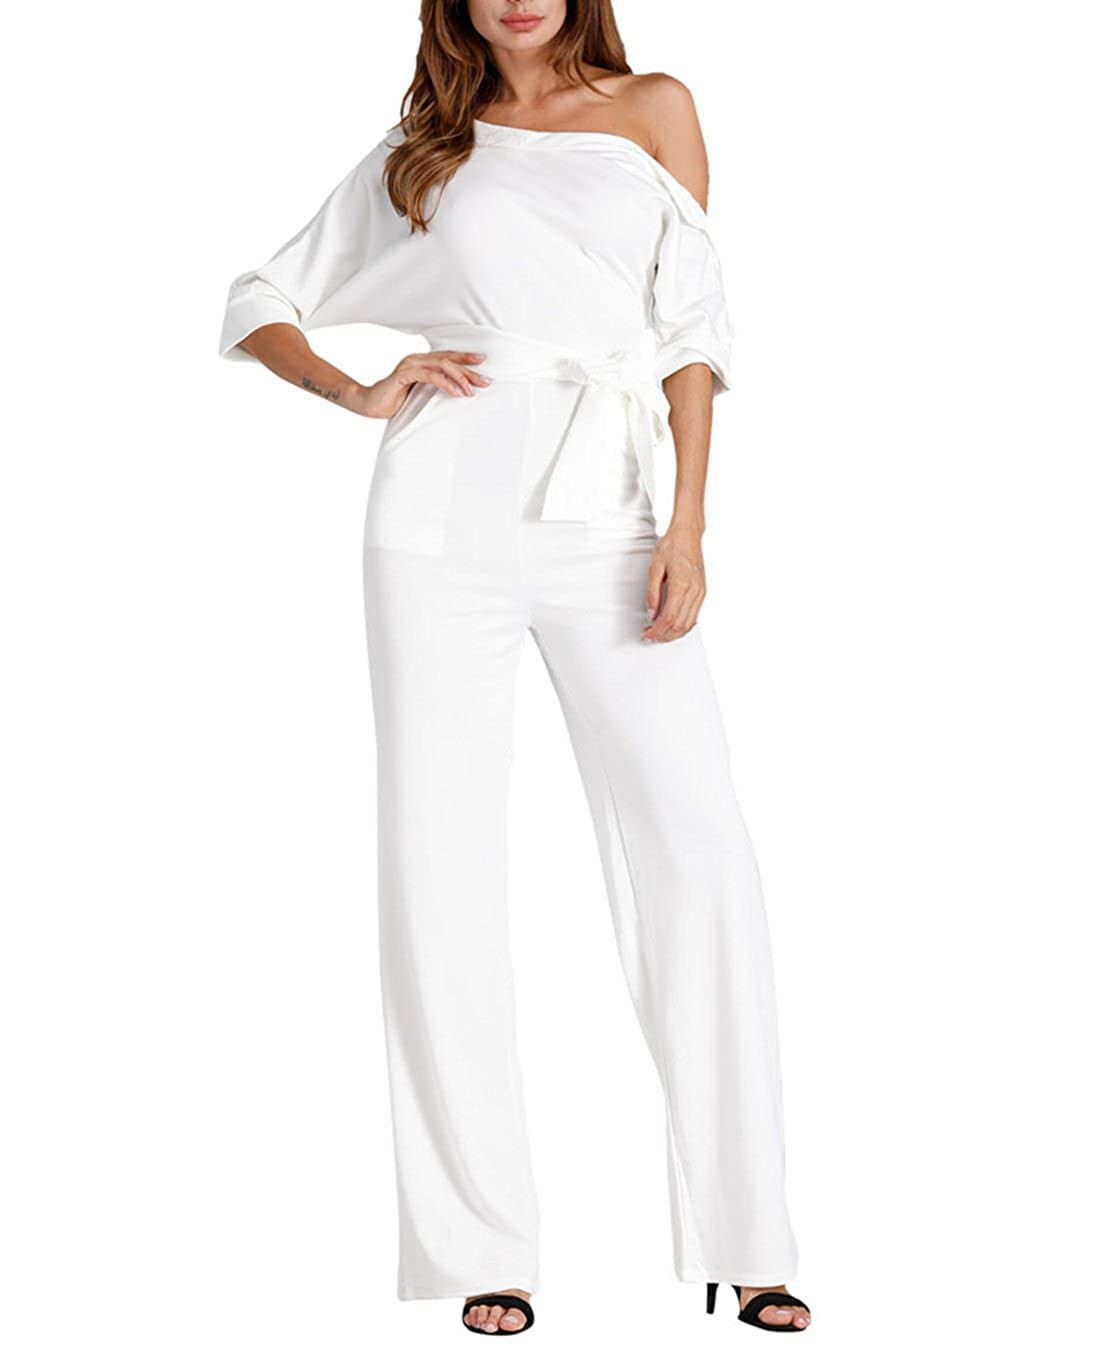 895c7a4ae1d0 Amazon.com  Solid Slanted One Shoulder Jumpsuits -Milliwin Women Sexy Wide  Leg Long Romper Pants Formal White M  Clothing